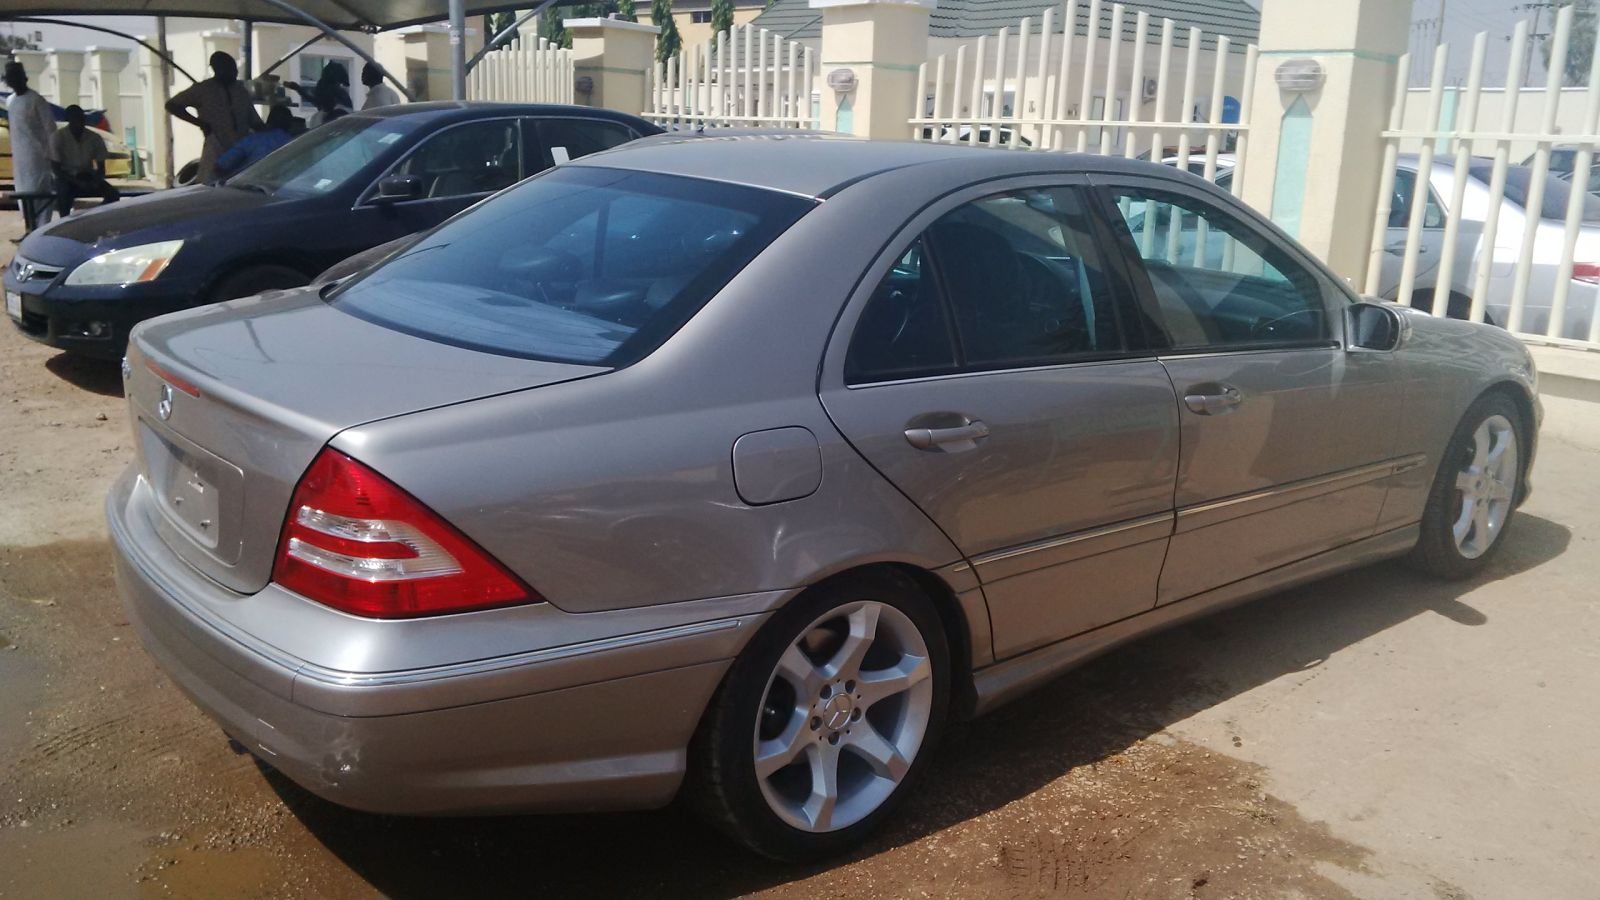 Sold toks 2007 mercedes benz c230 for sale autos nigeria for Mercedes benz 2007 c230